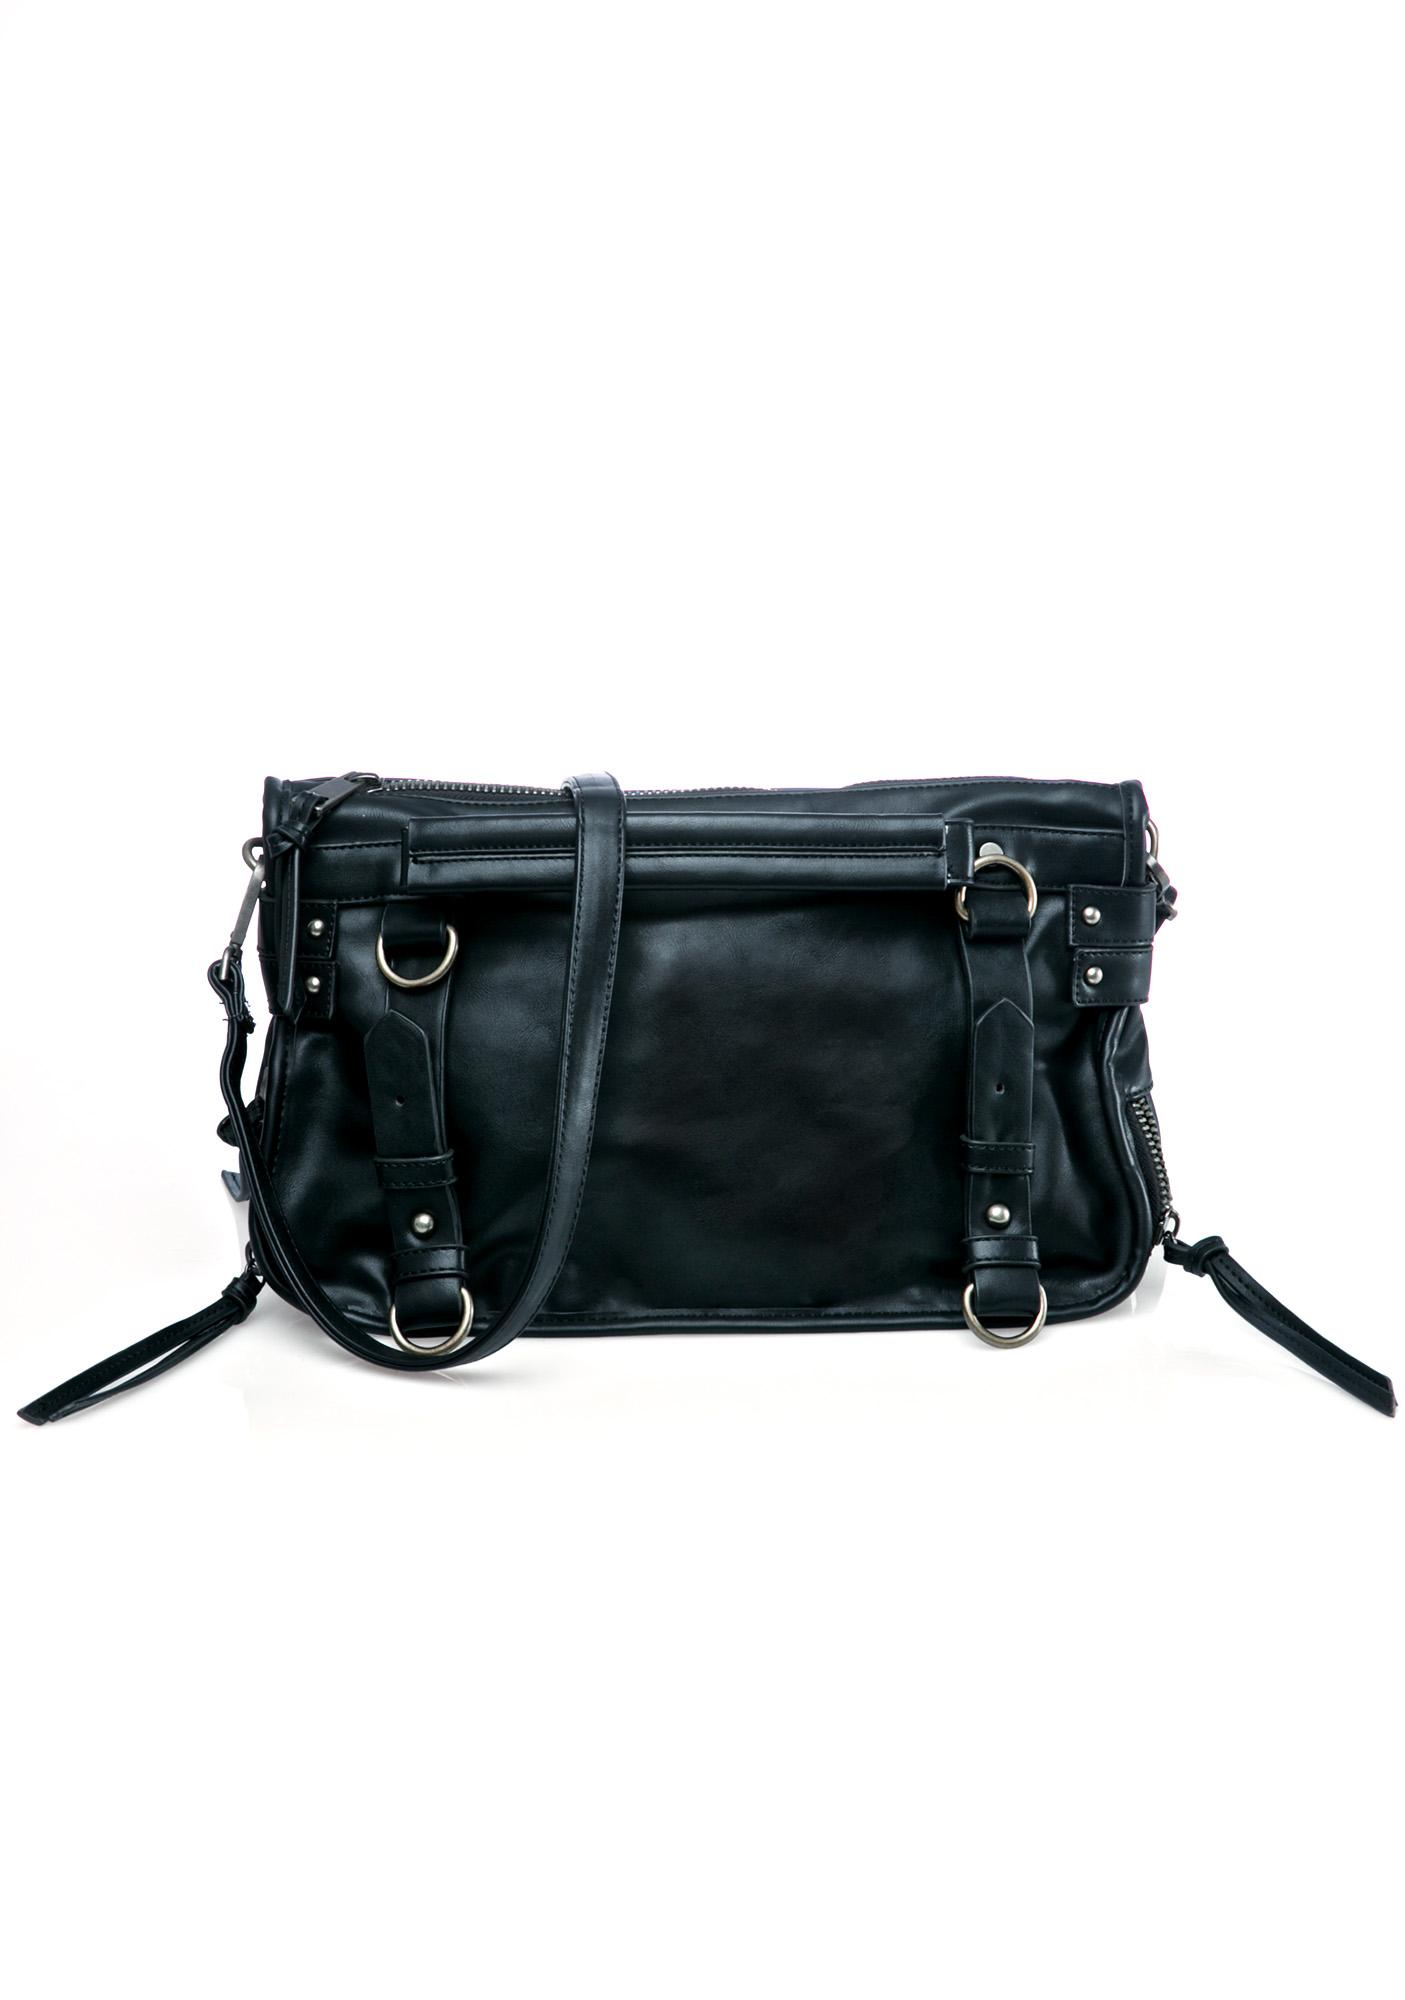 Stormy Skies Crossbody Bag